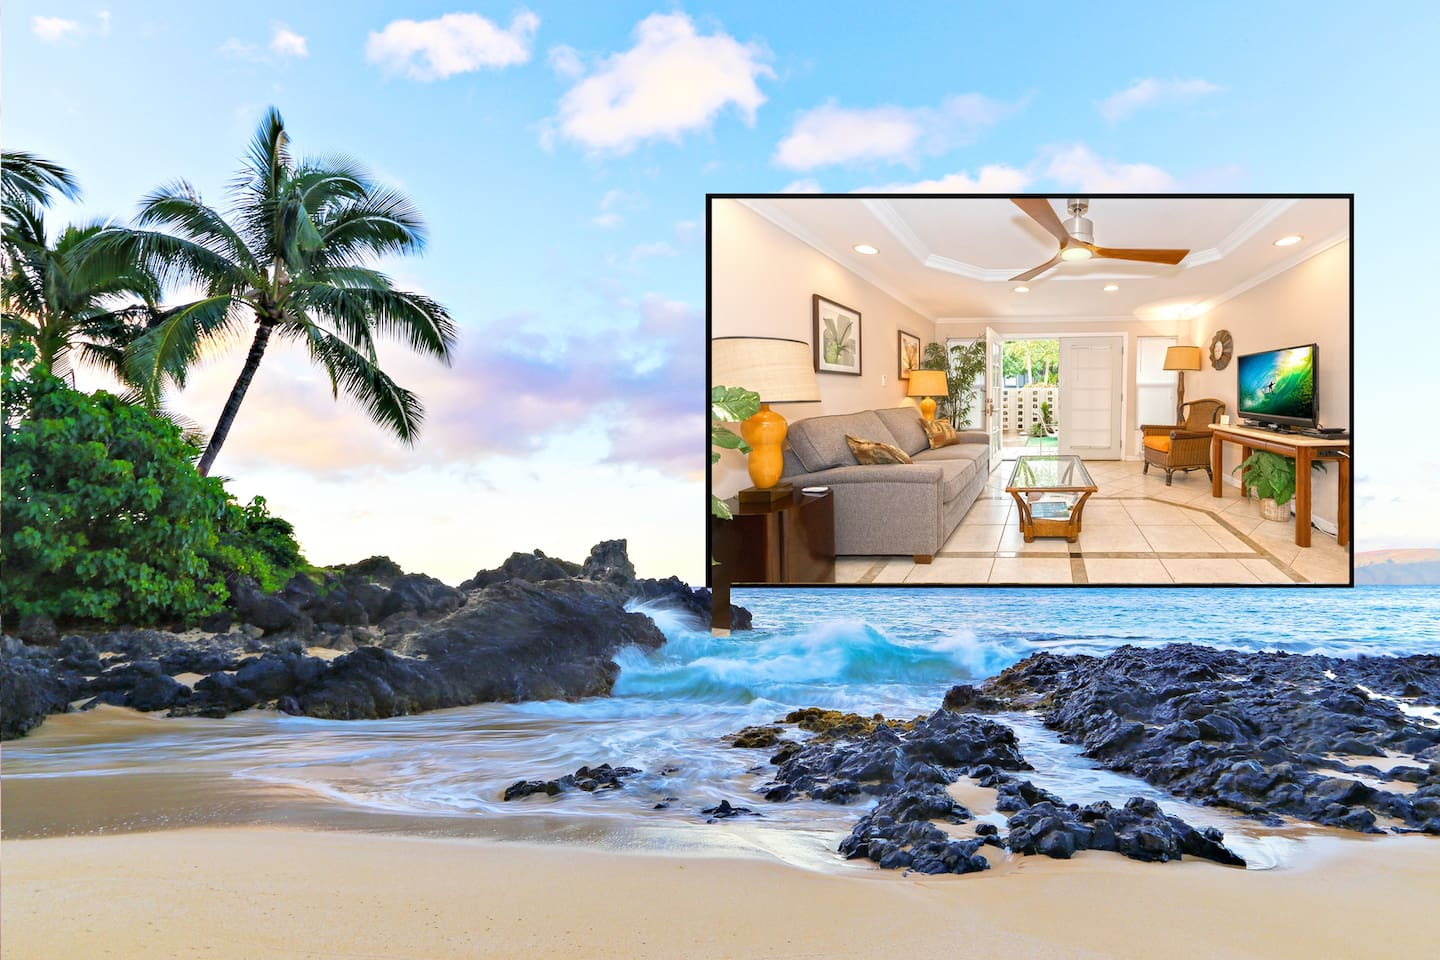 """The south end of Cove Beach, a secluded """"secret beach"""" located half a block north of apartment, with an inset of the interior of the apartment"""